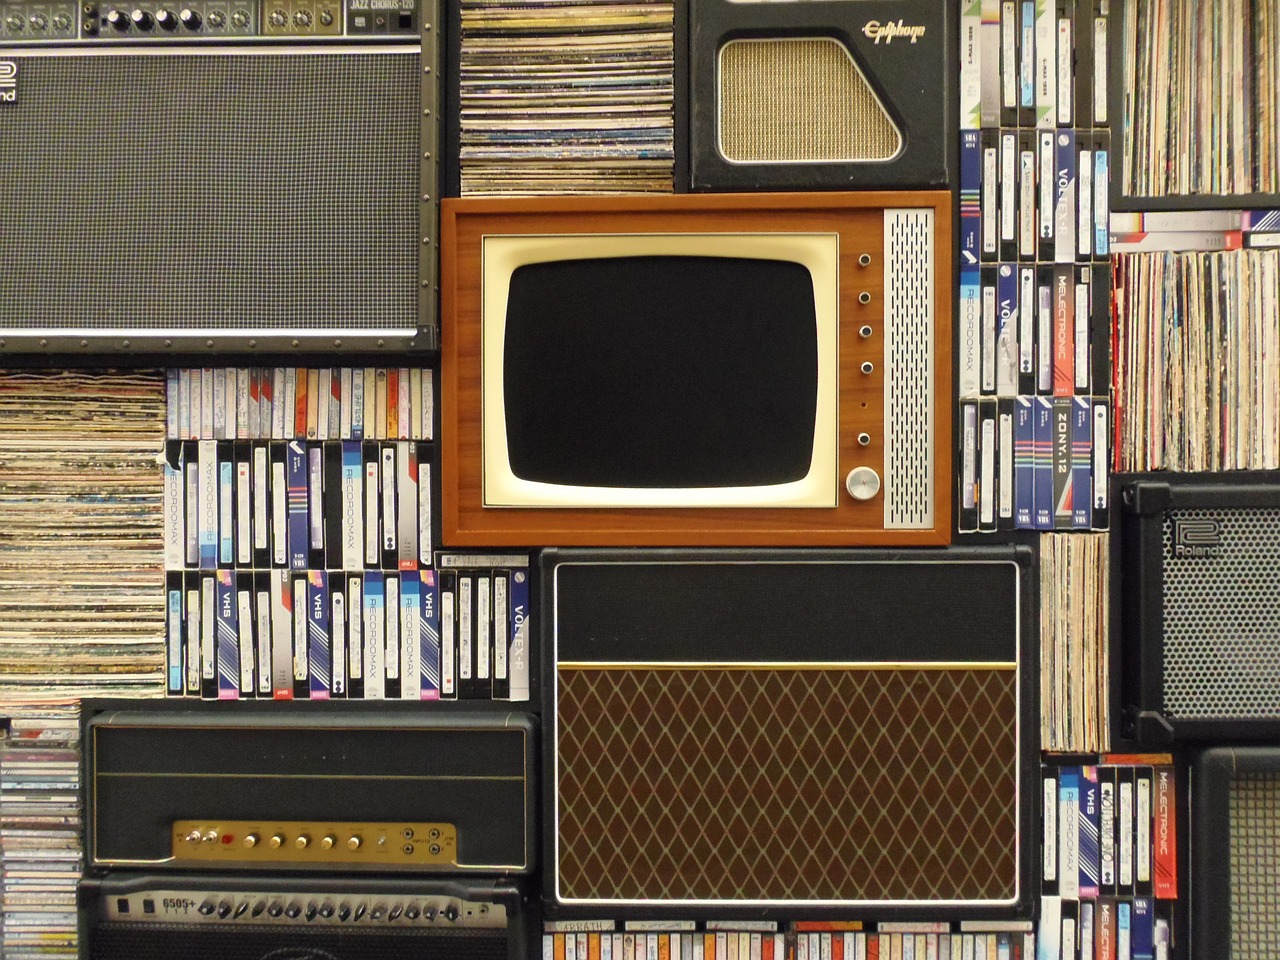 old tv,records,vhs tapes,retro,tv,vintage,videotape,vhs,television,studio,movie,media,home,aged,old,outdated,free pictures, free photos, free images, royalty free, free illustrations, public domain